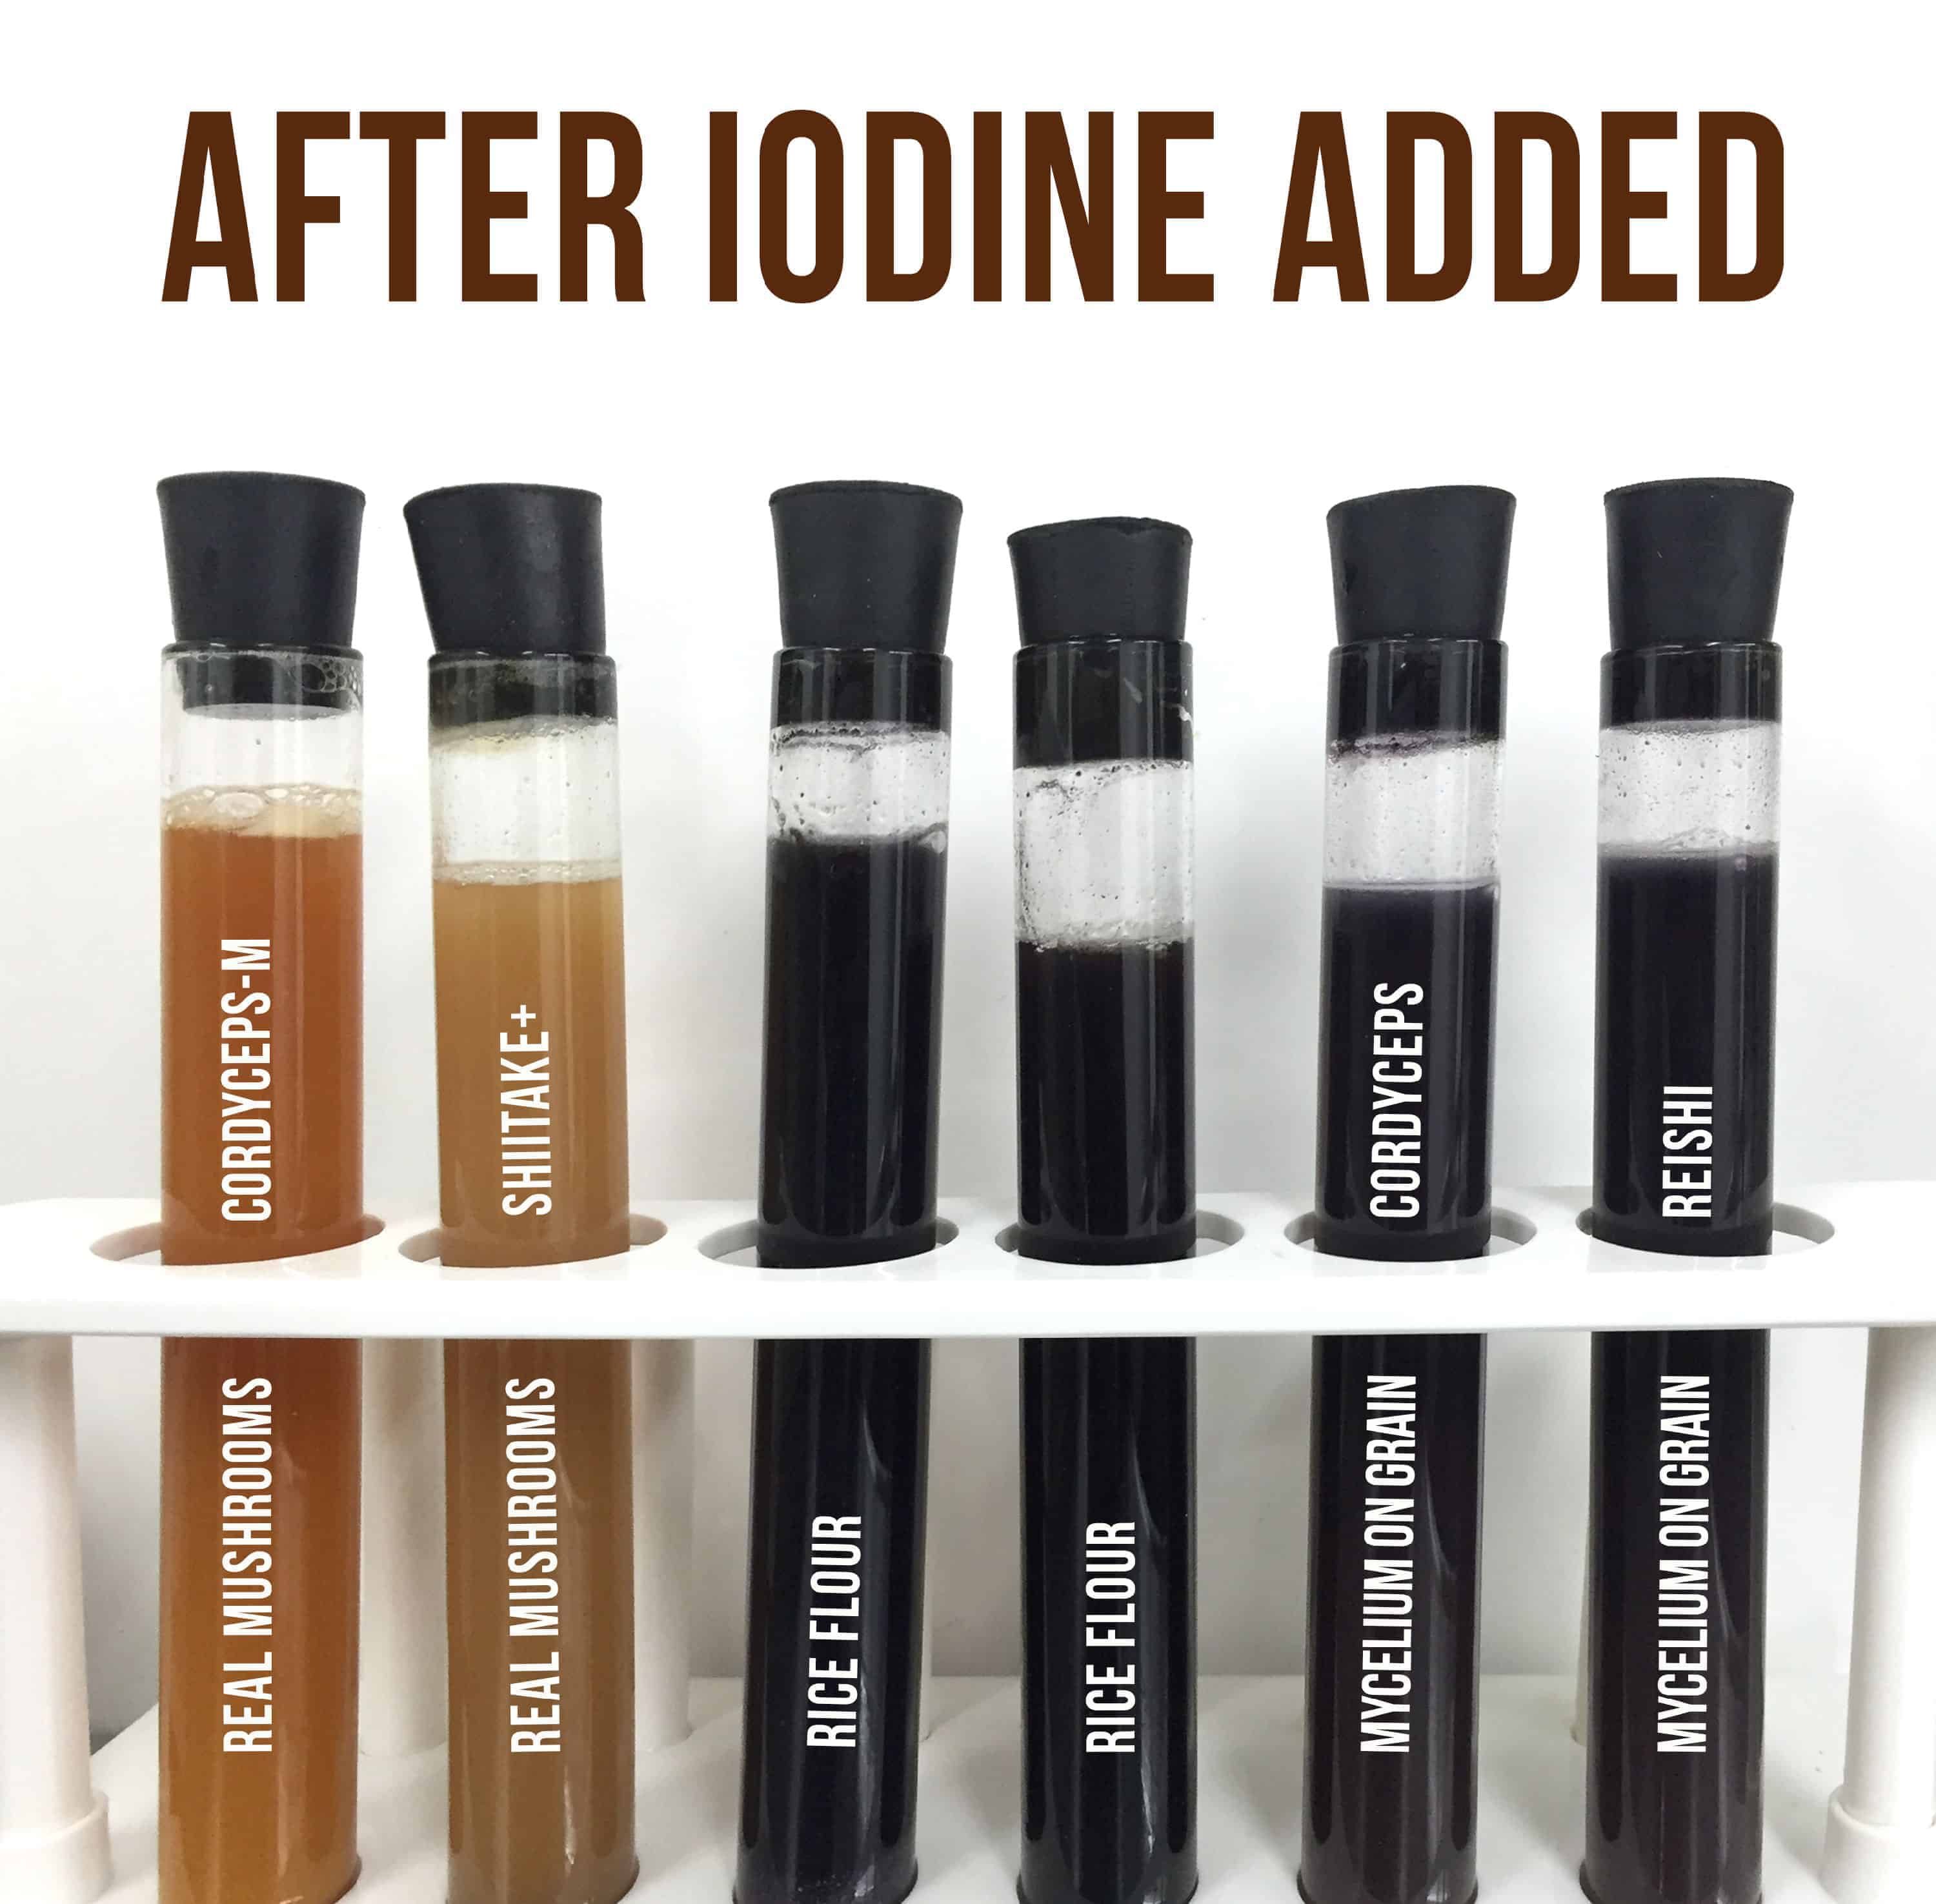 Iodine Starch Test on Mushroom Products - After Iodine